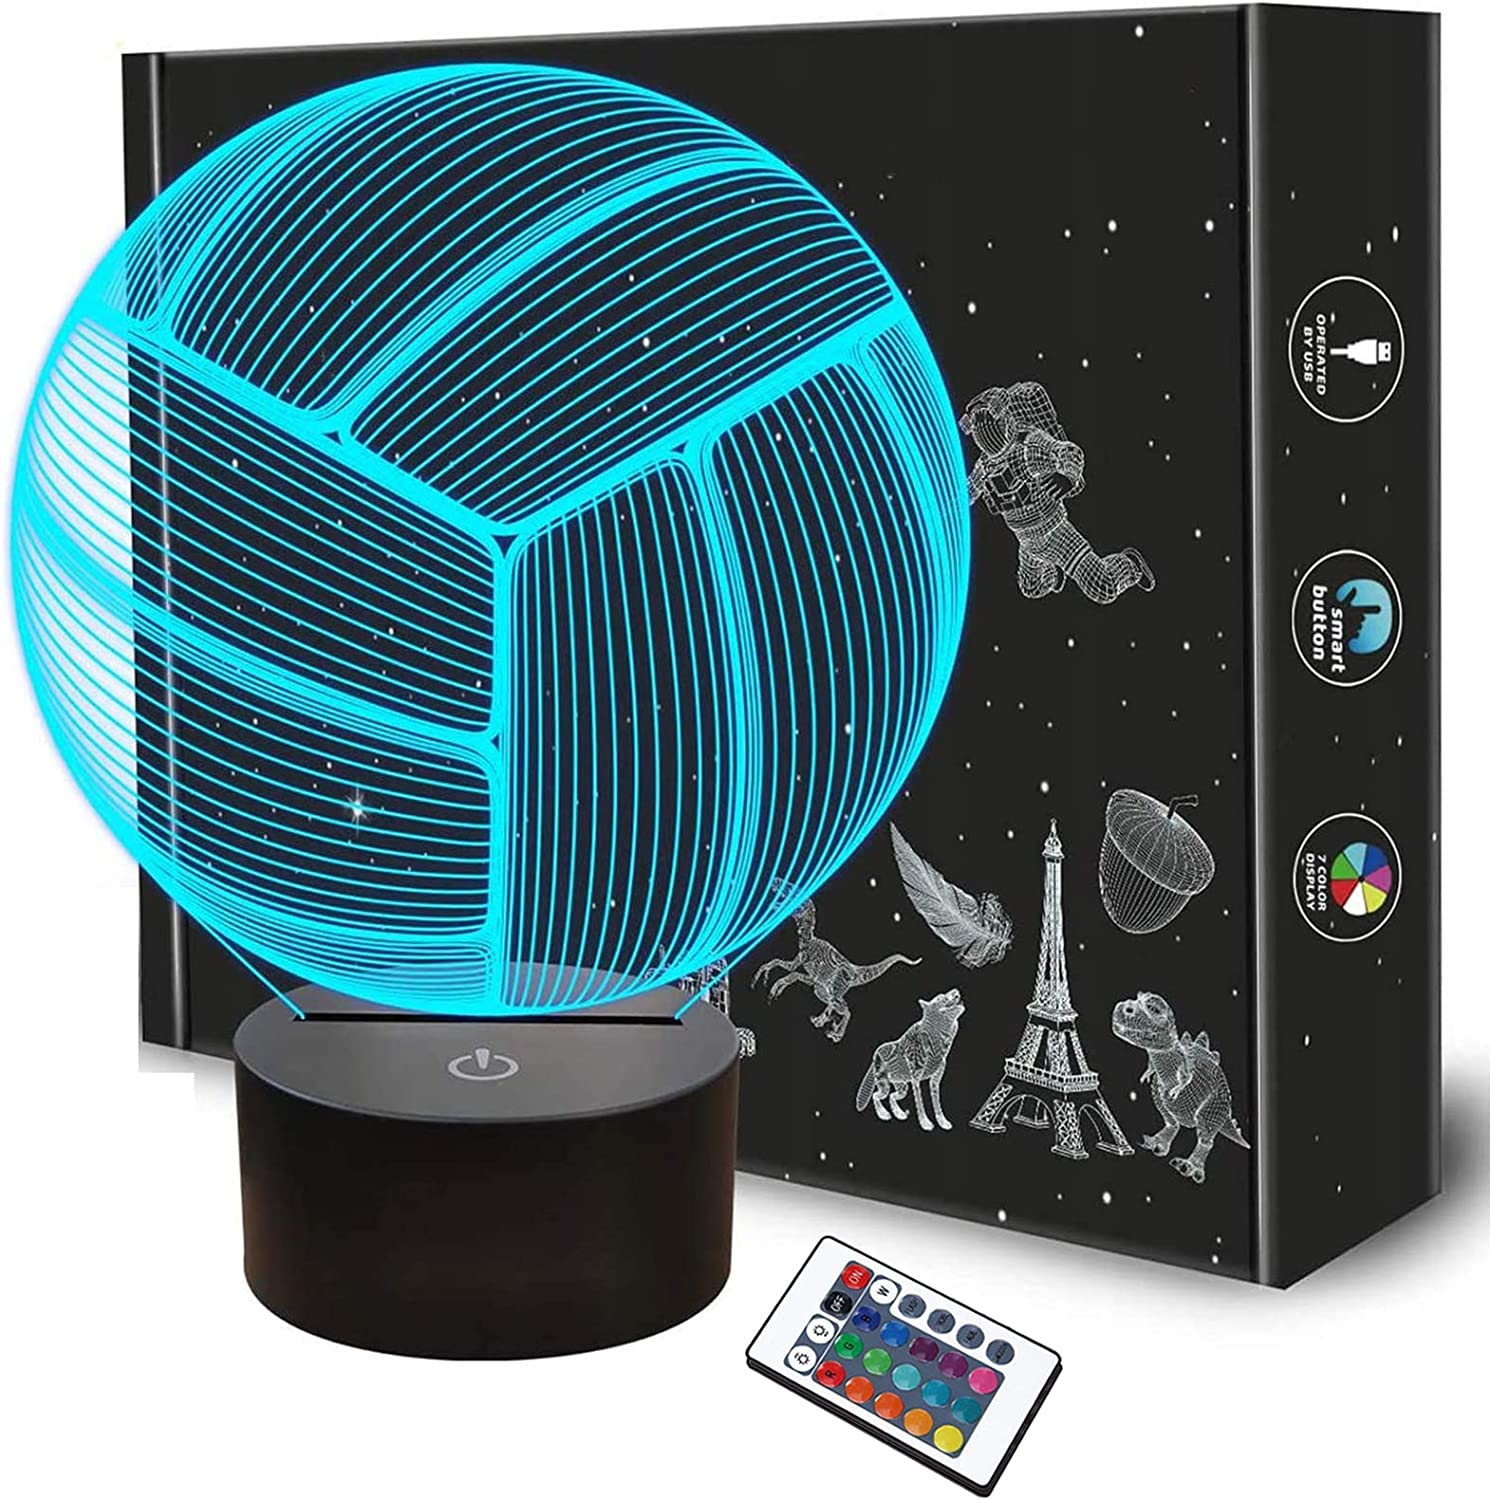 Volleyball 3D Night Light, Sport Mood Illusion Lamp for Kids with Remote Control 16 Colors Changing, Creative Birthday Beach Volleyball Coach Lover Gifts for Boys Bedroom Decoration